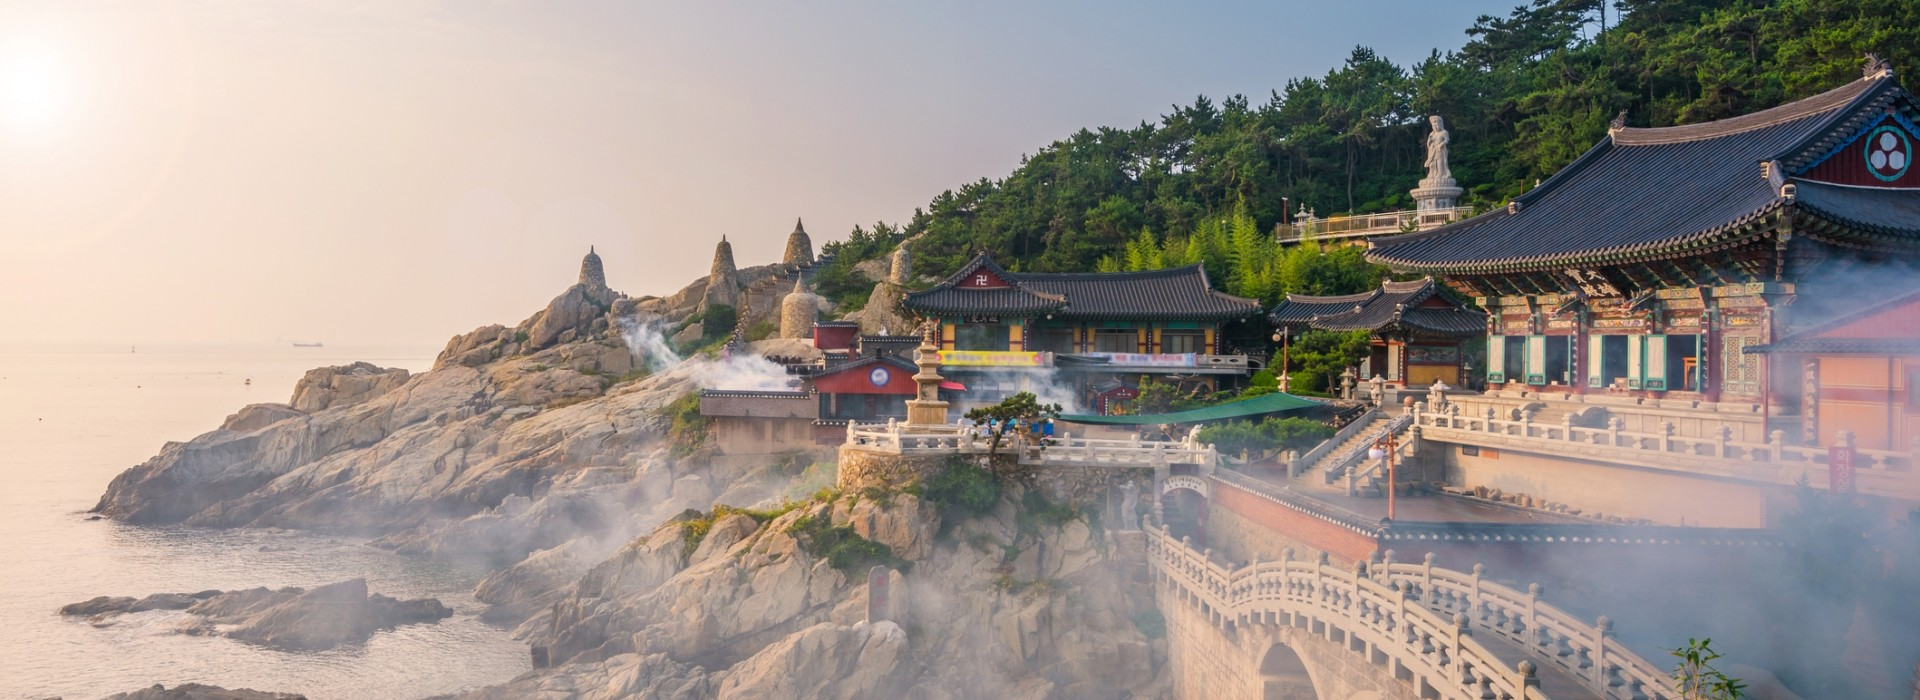 10 Best South Korea Tours & Trips 2019/2020 (with 52 Reviews) | Bookmundi